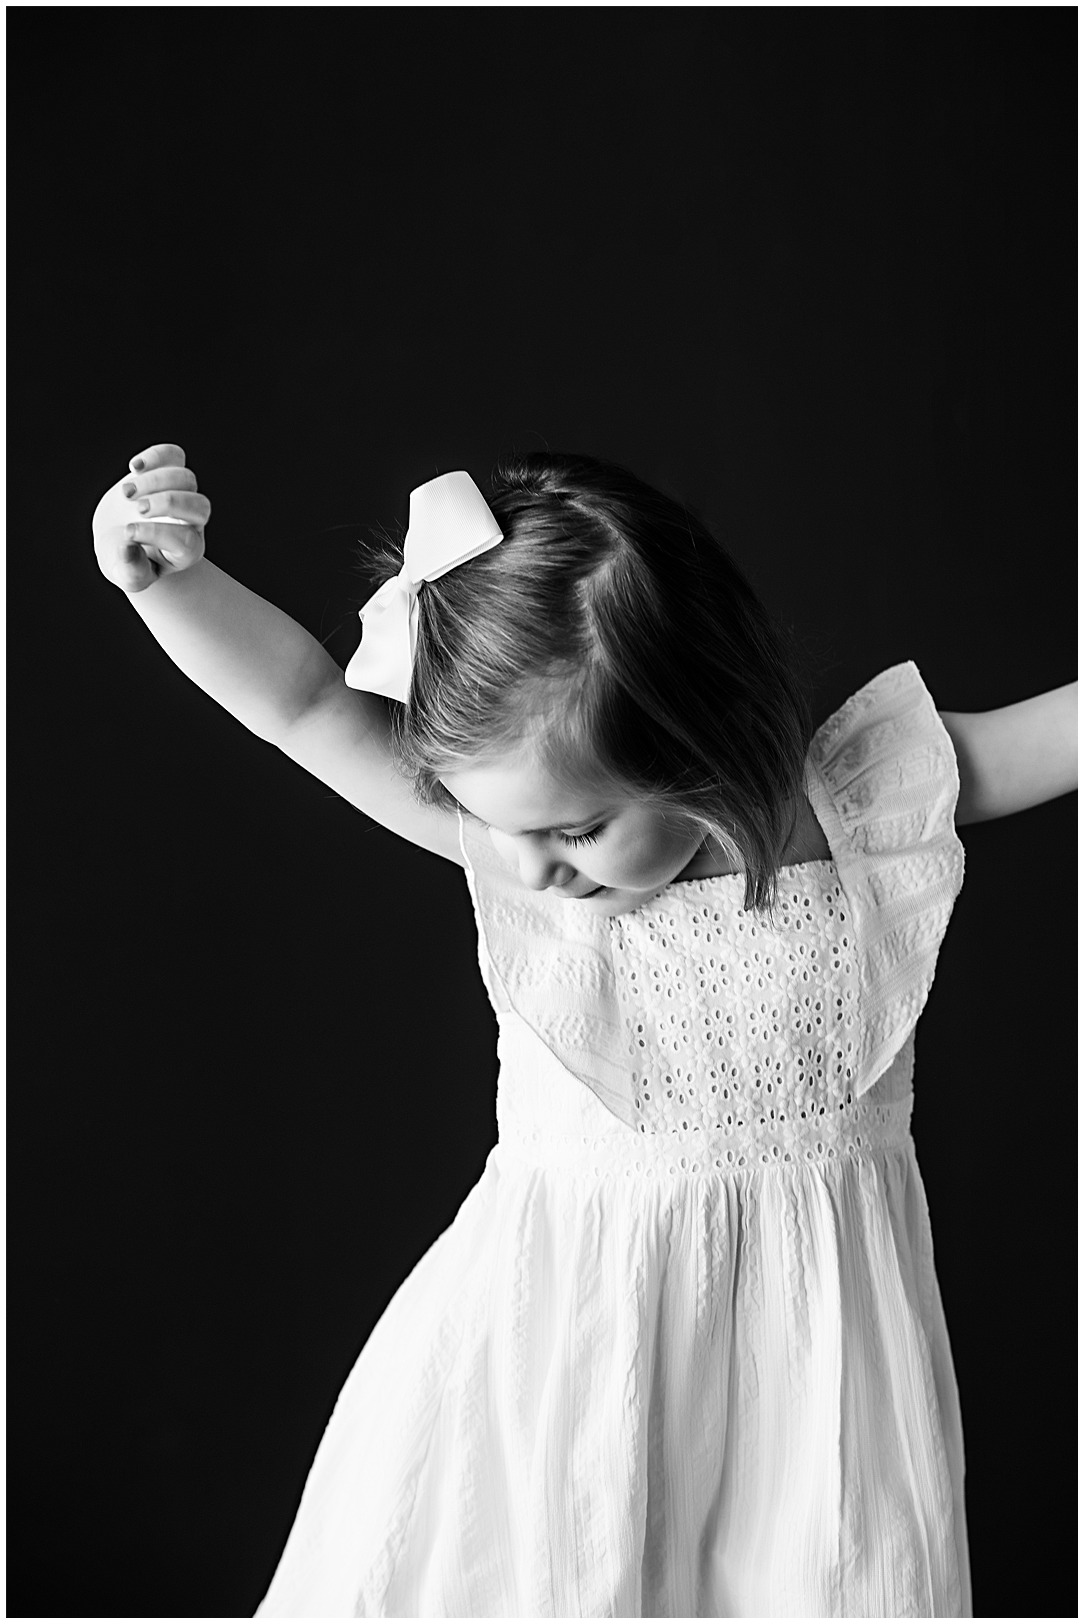 Tessa_marie_photography_atlanta_childrens_fine_art_black_and_white_photography_family_photographer_0012.jpg